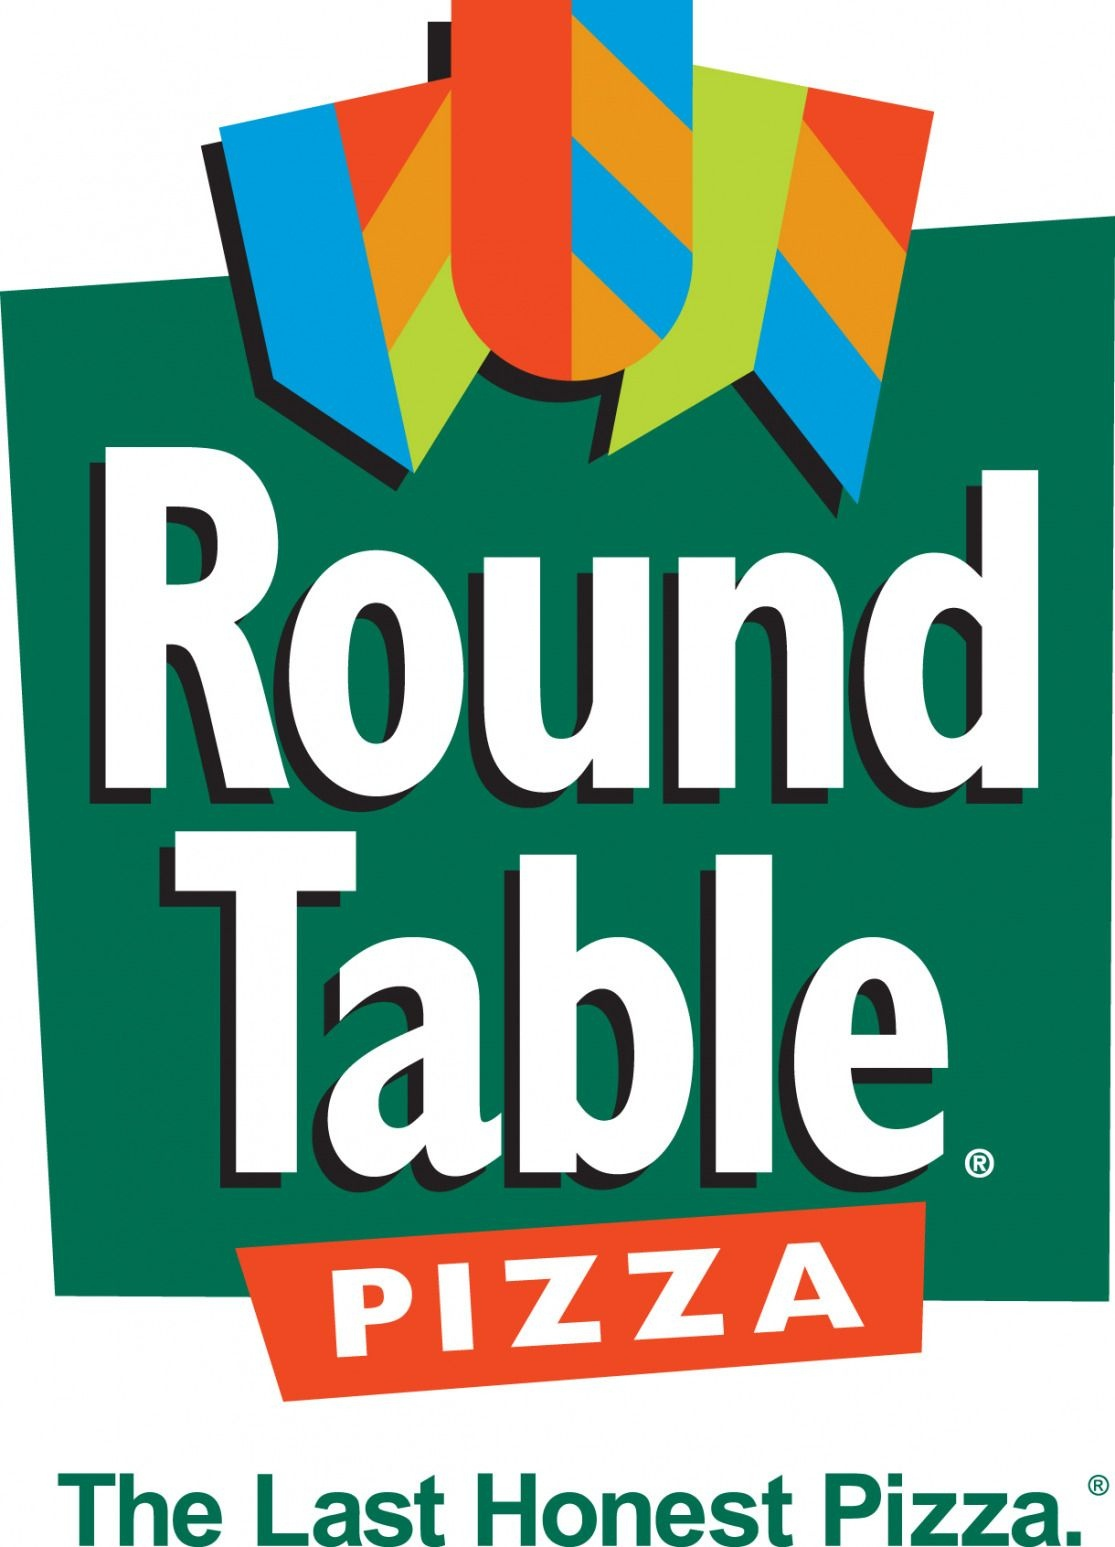 Pinannora On Round End Table | Pizza Coupons, Pizza, Pizza Menu - Free Printable Round Table Pizza Coupons